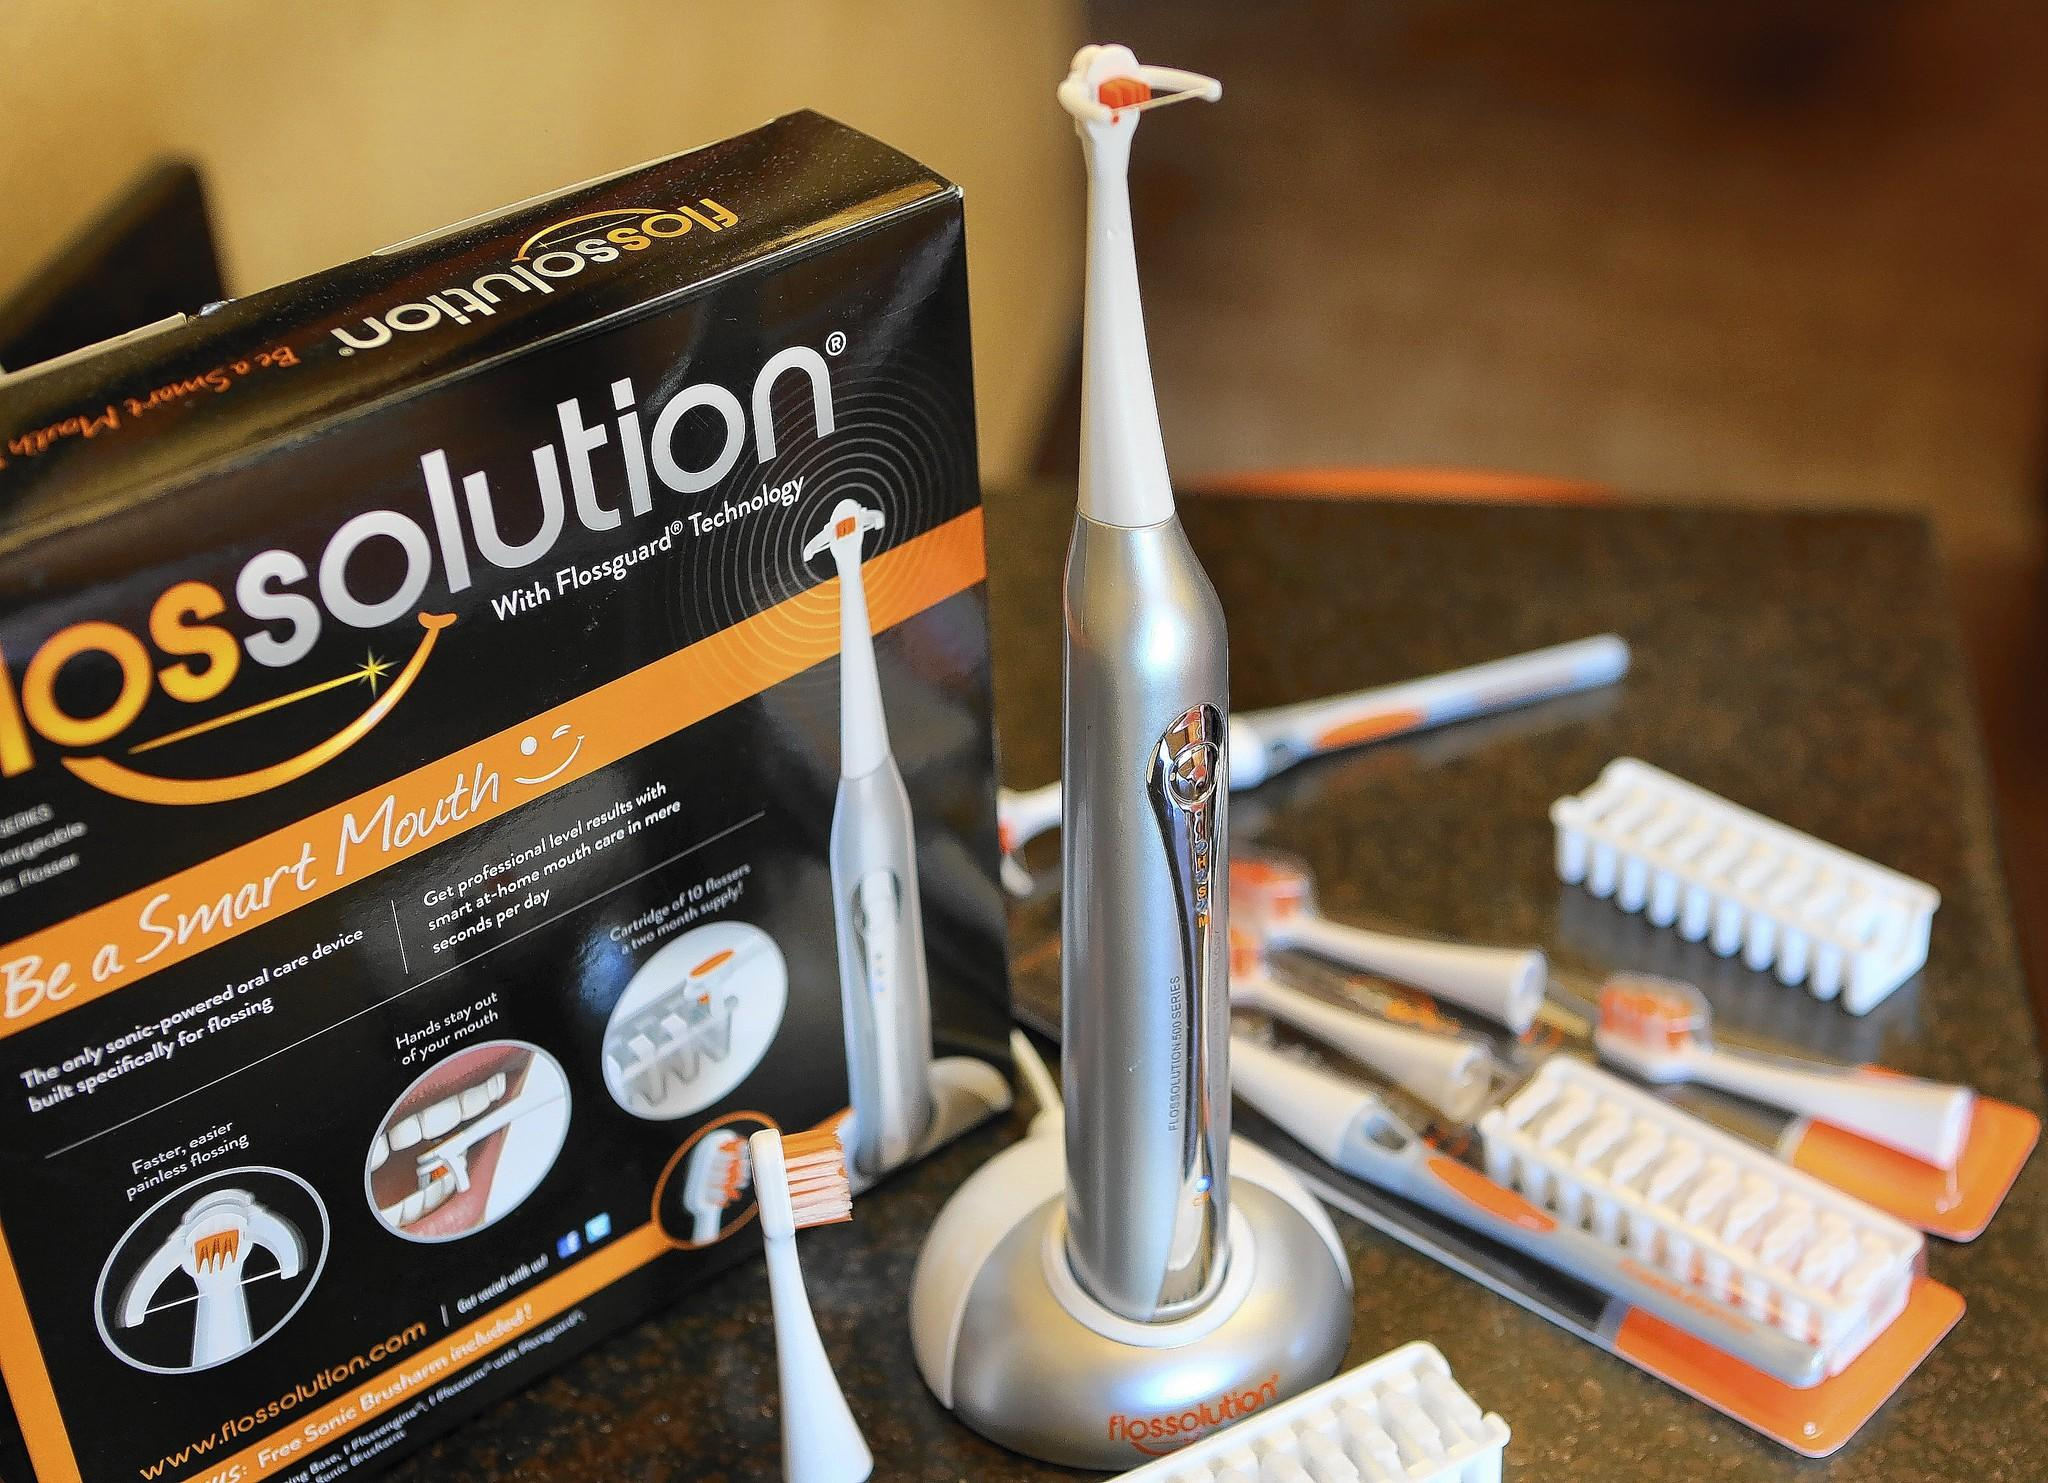 Dr. Tim Pruett, a Lake County dentist, has created a new way to floss teeth. He created the Flossolution, which is sold on Amazon.com and through dental offices and at its website: flossolution.com. The device has been awarded one patent, and has three others pending. Pruett decided to figure out a way to make it easier to floss correctly and eliminate all the reasons patients told him they don't floss: It hurts, it makes my gums bleed, the floss gets stuck, it takes too long, I don't like putting my fingers in my mouth. (Tom Benitez/OrlandoSentinel)